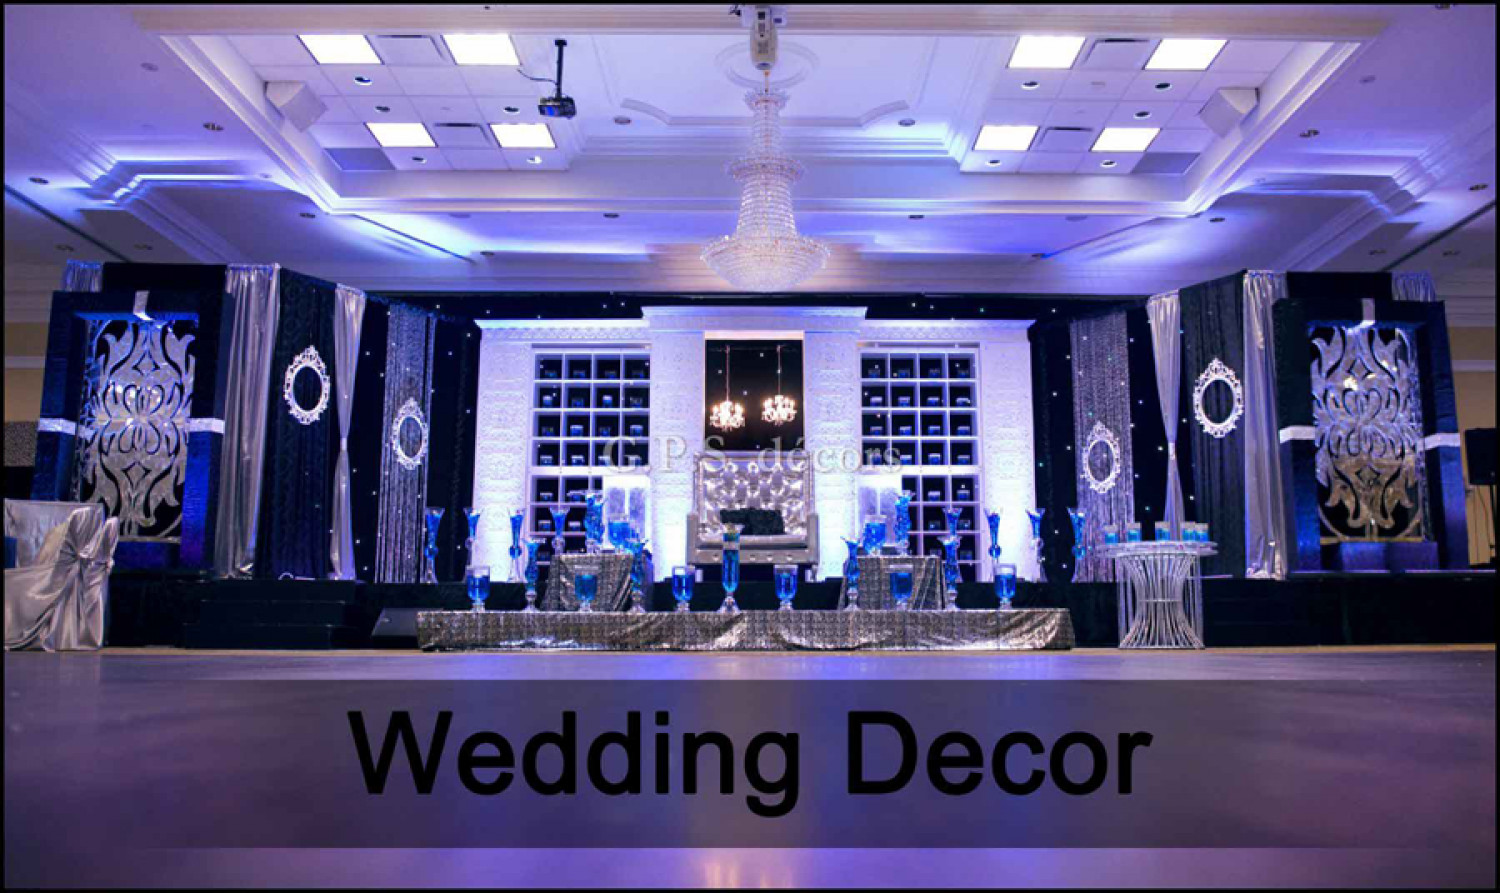 Gps decors wedding decorators toronto wedding decor brampton gps decors wedding decorators toronto wedding decor brampton event decor mississauga serving junglespirit Image collections